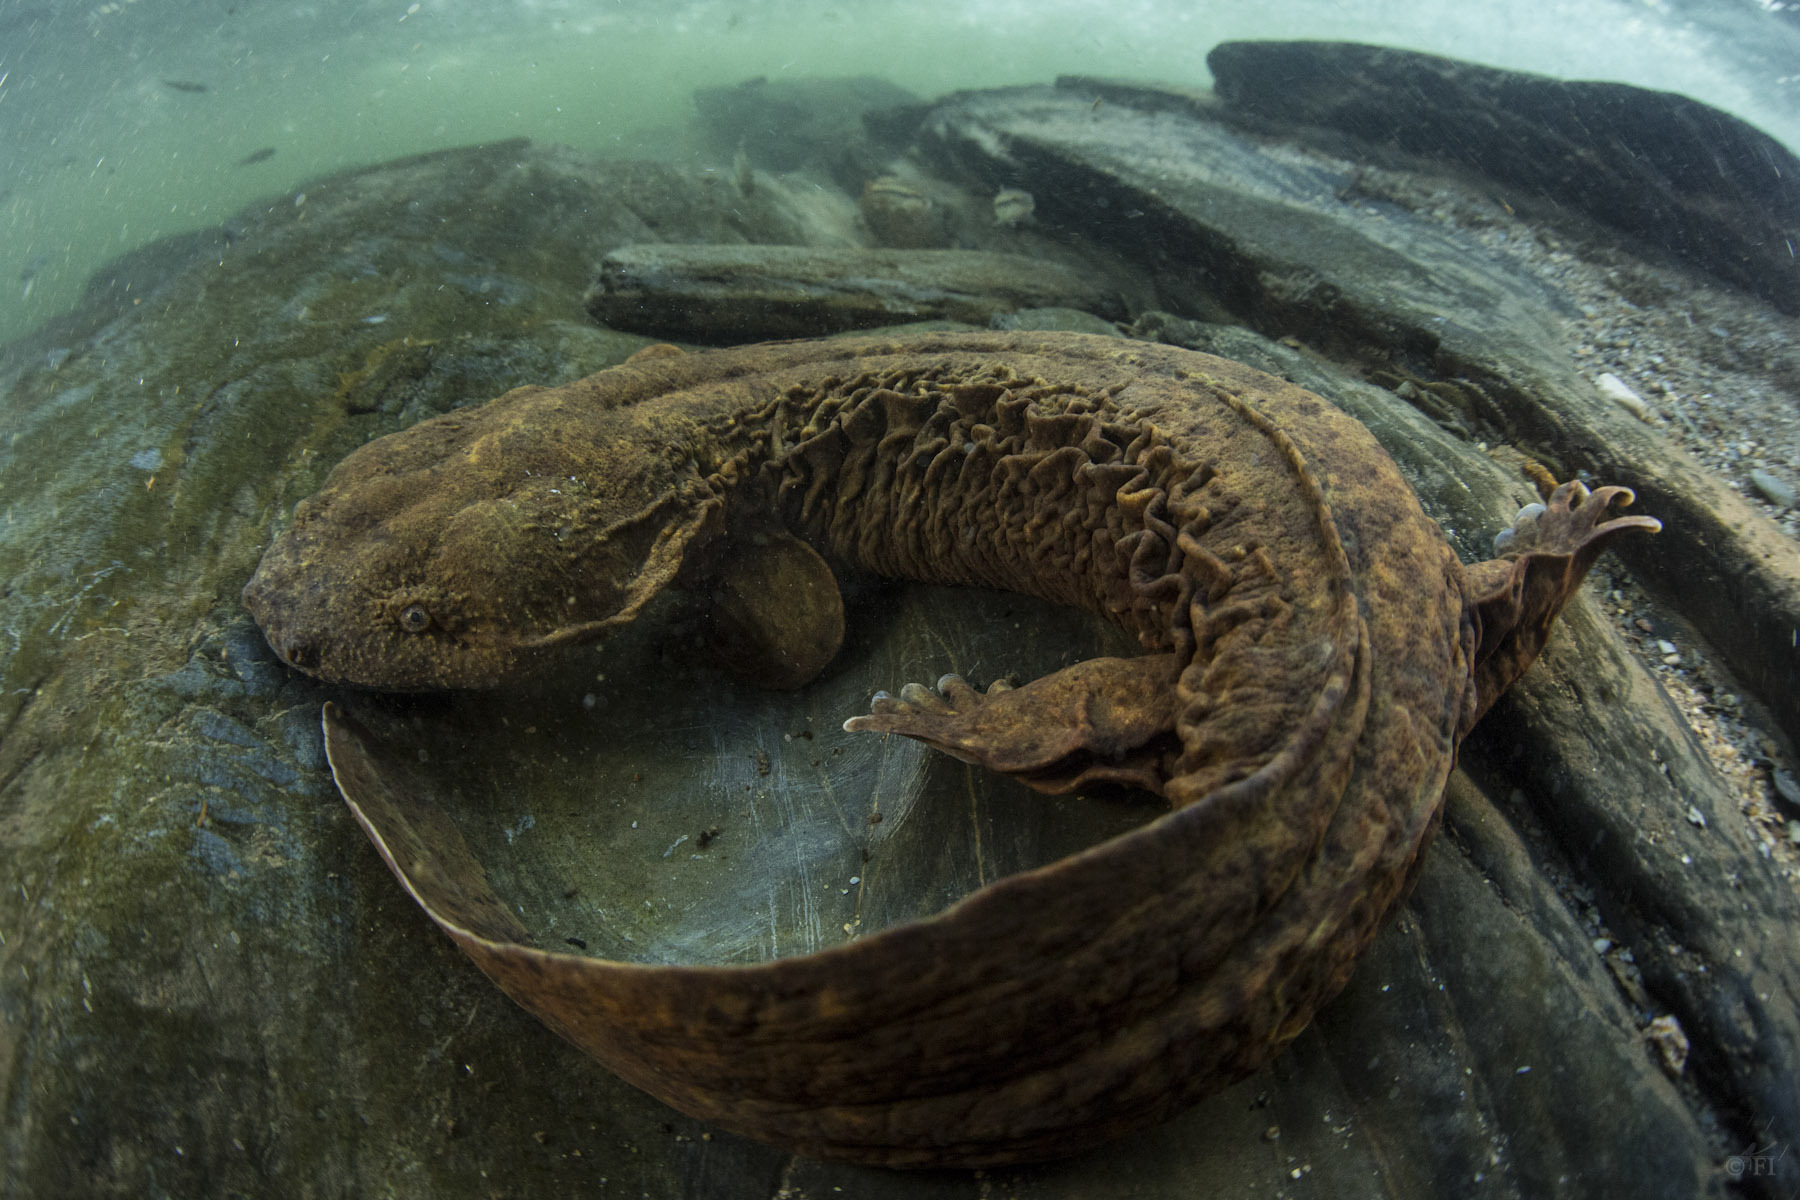 an overview of the eastern hellbender Summary 2 the hellbender ( cryptobranchus alleganiensis ), also known as the hellbender salamander , is a species of giant salamander endemic to eastern north america a member of the cryptobranchidae family, hellbenders are the only members of the cryptobranchus genus, and are joined only by one other genus of salamanders ( andrias , which.